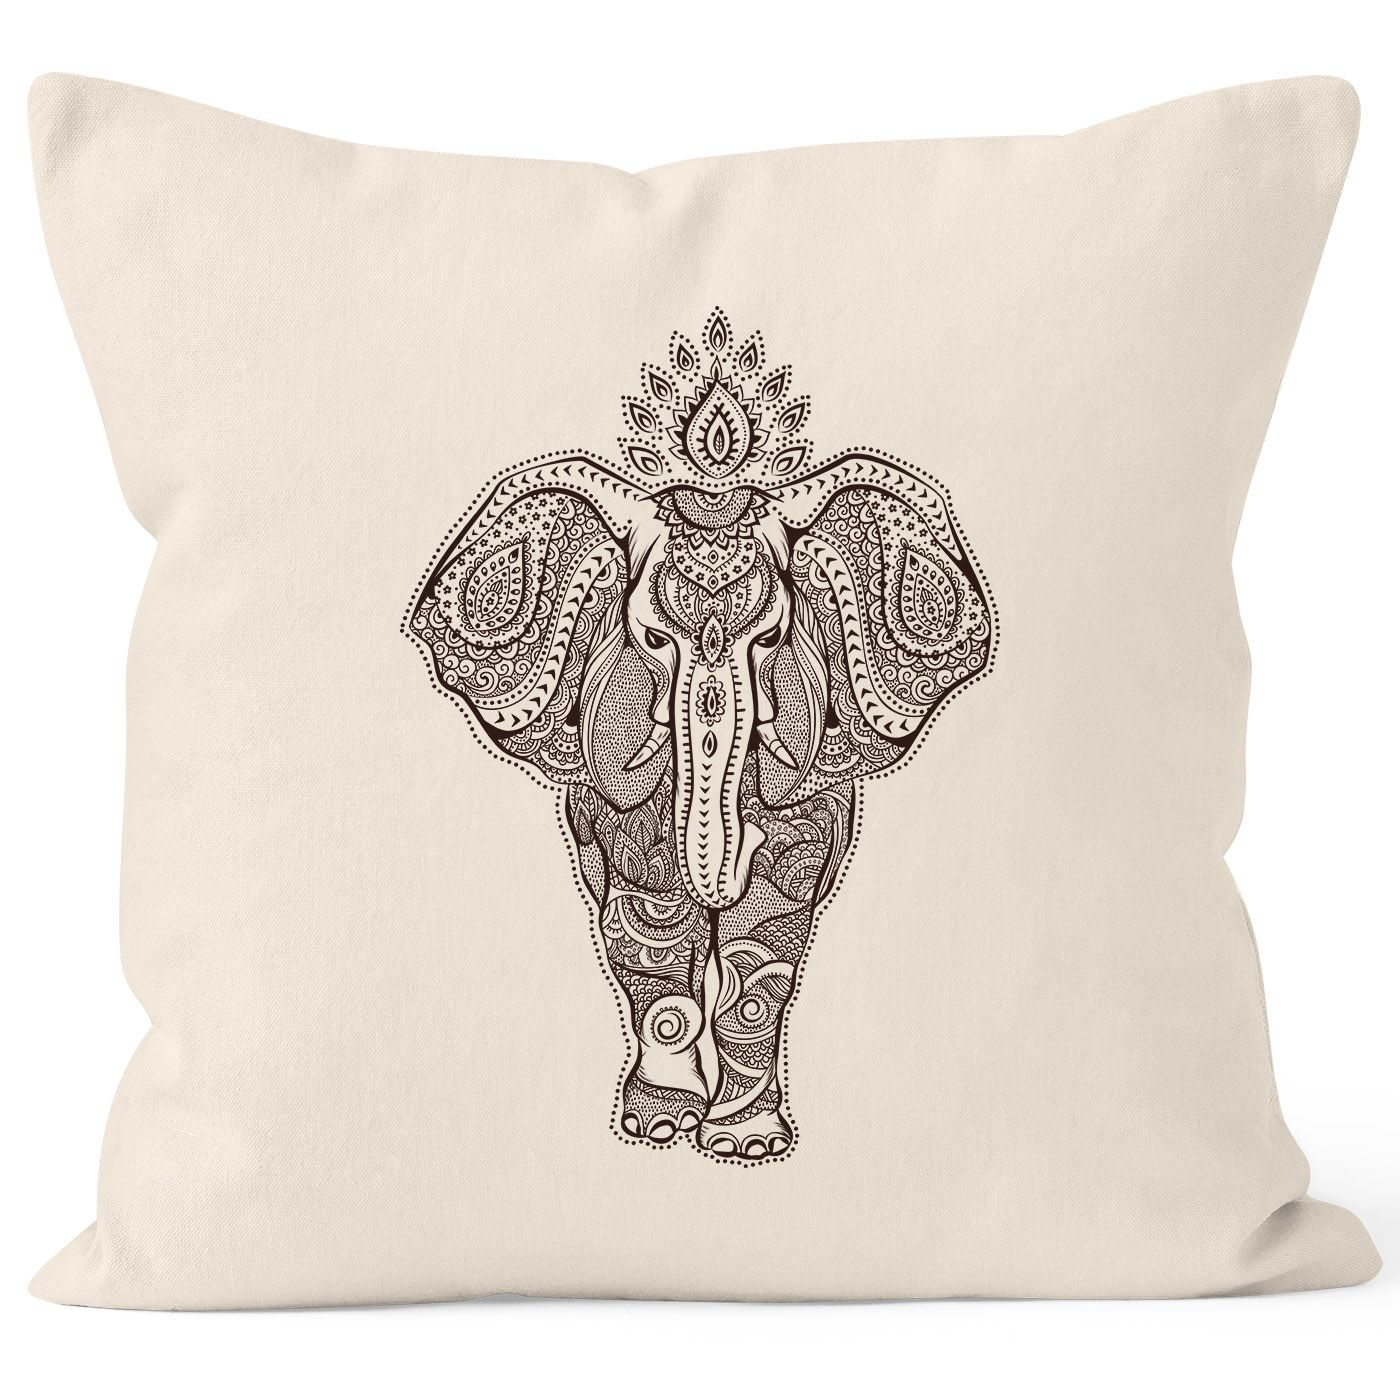 kissenbezug zentangle elefant mandala boho bohemian ethno kissenh lle dekokissen 40x40 baumwolle. Black Bedroom Furniture Sets. Home Design Ideas